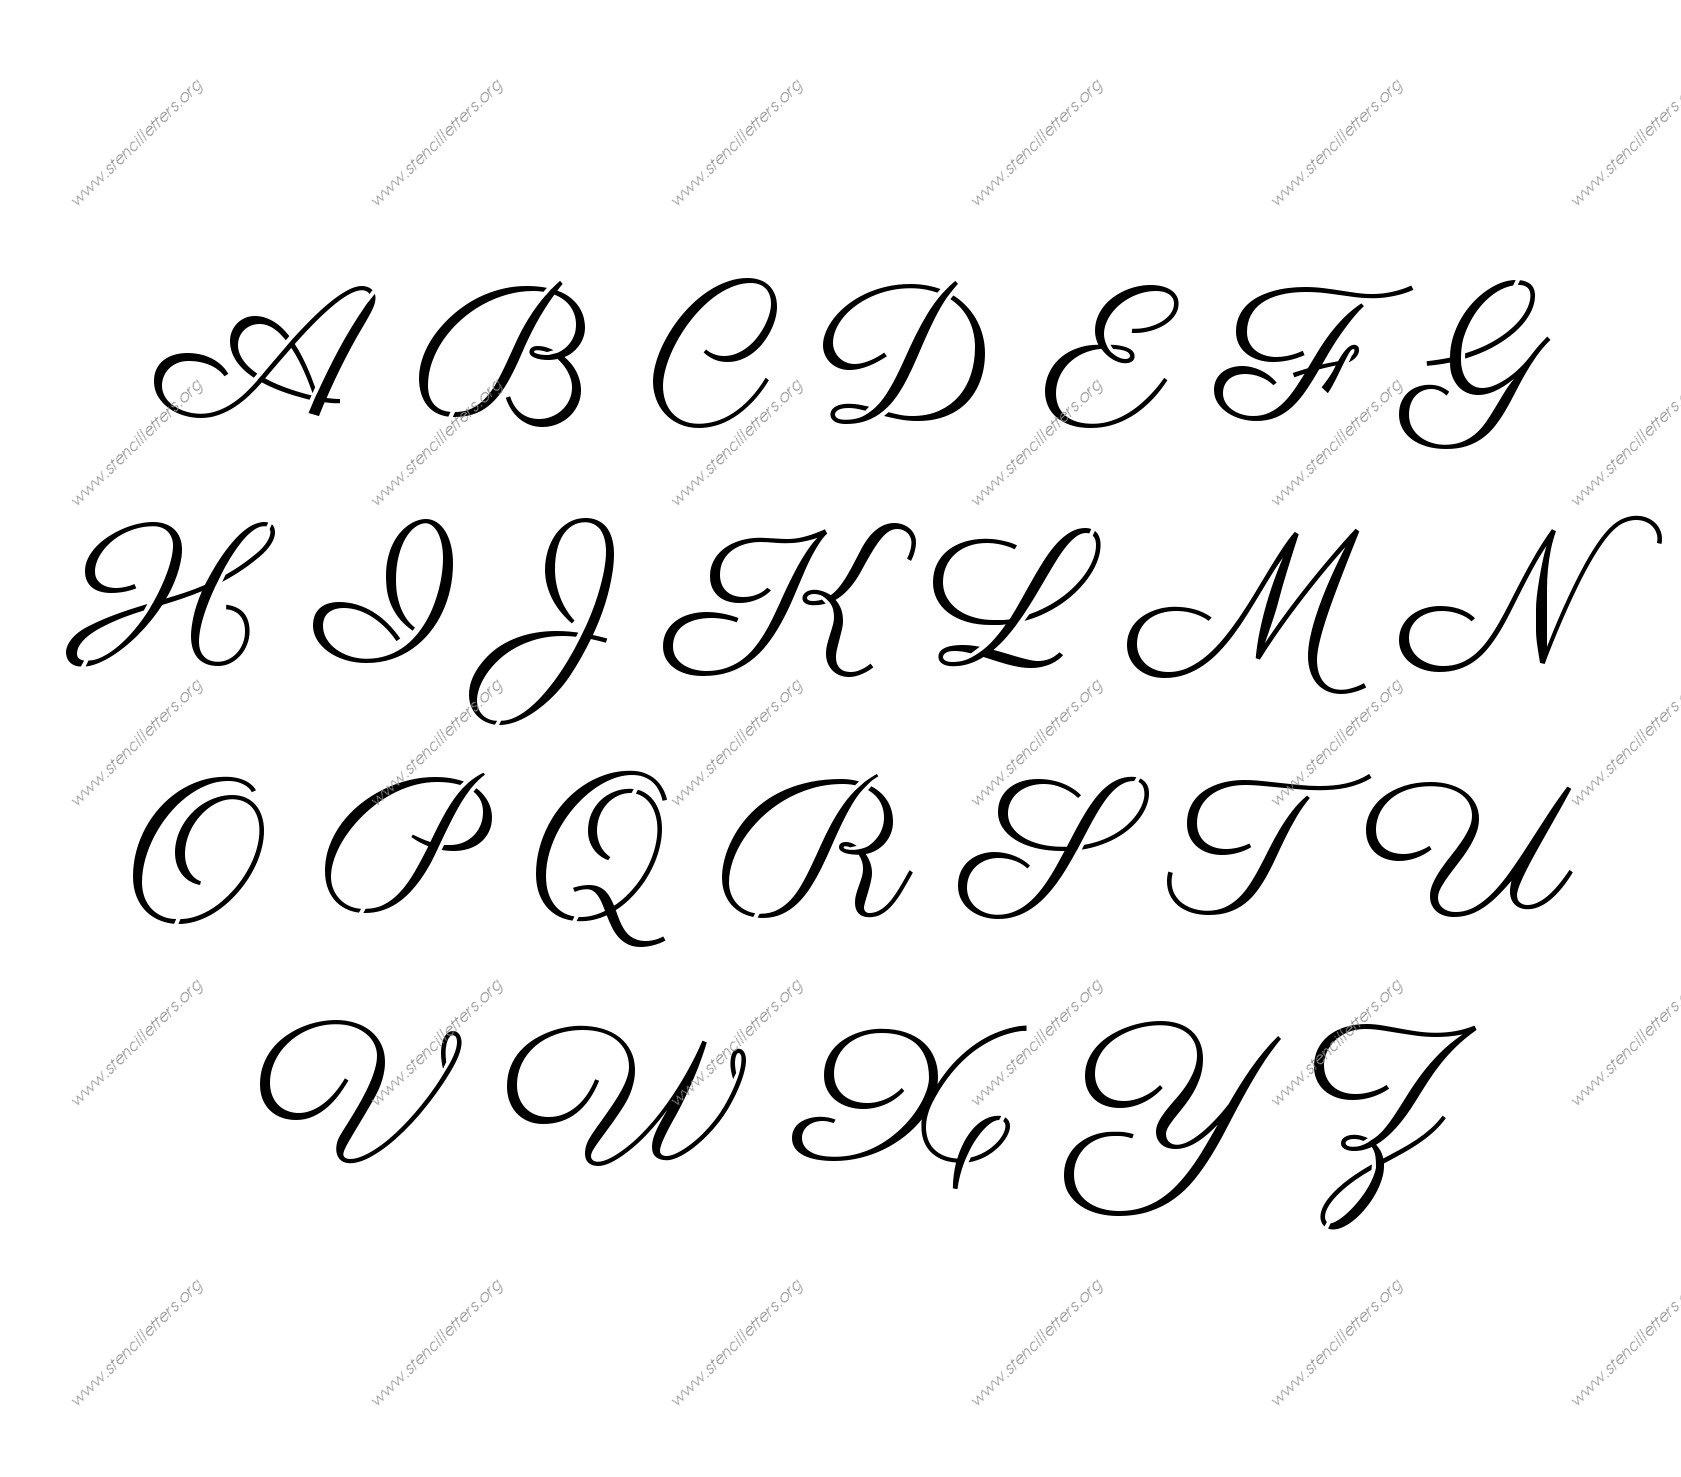 12 Free Printable Fonts Templates Images - Free Printable Letter - Free Printable Letter Stencils